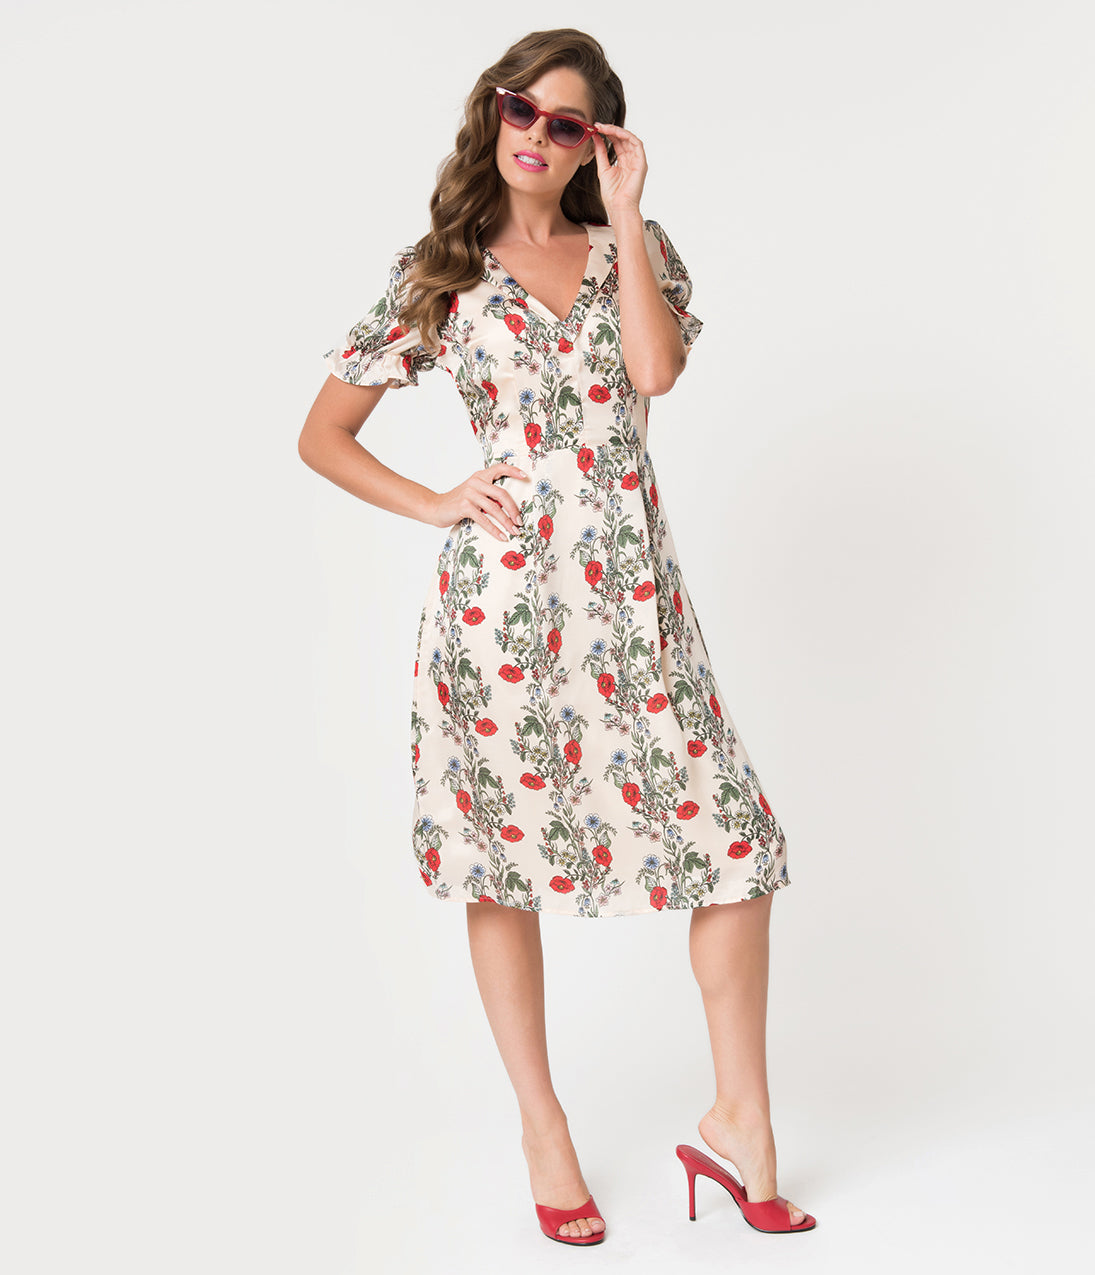 1940s Style Dresses | 40s Dress, Swing Dress 1940S Style Ivory Modern Icon Floral Print Satin Midi Dress $86.00 AT vintagedancer.com